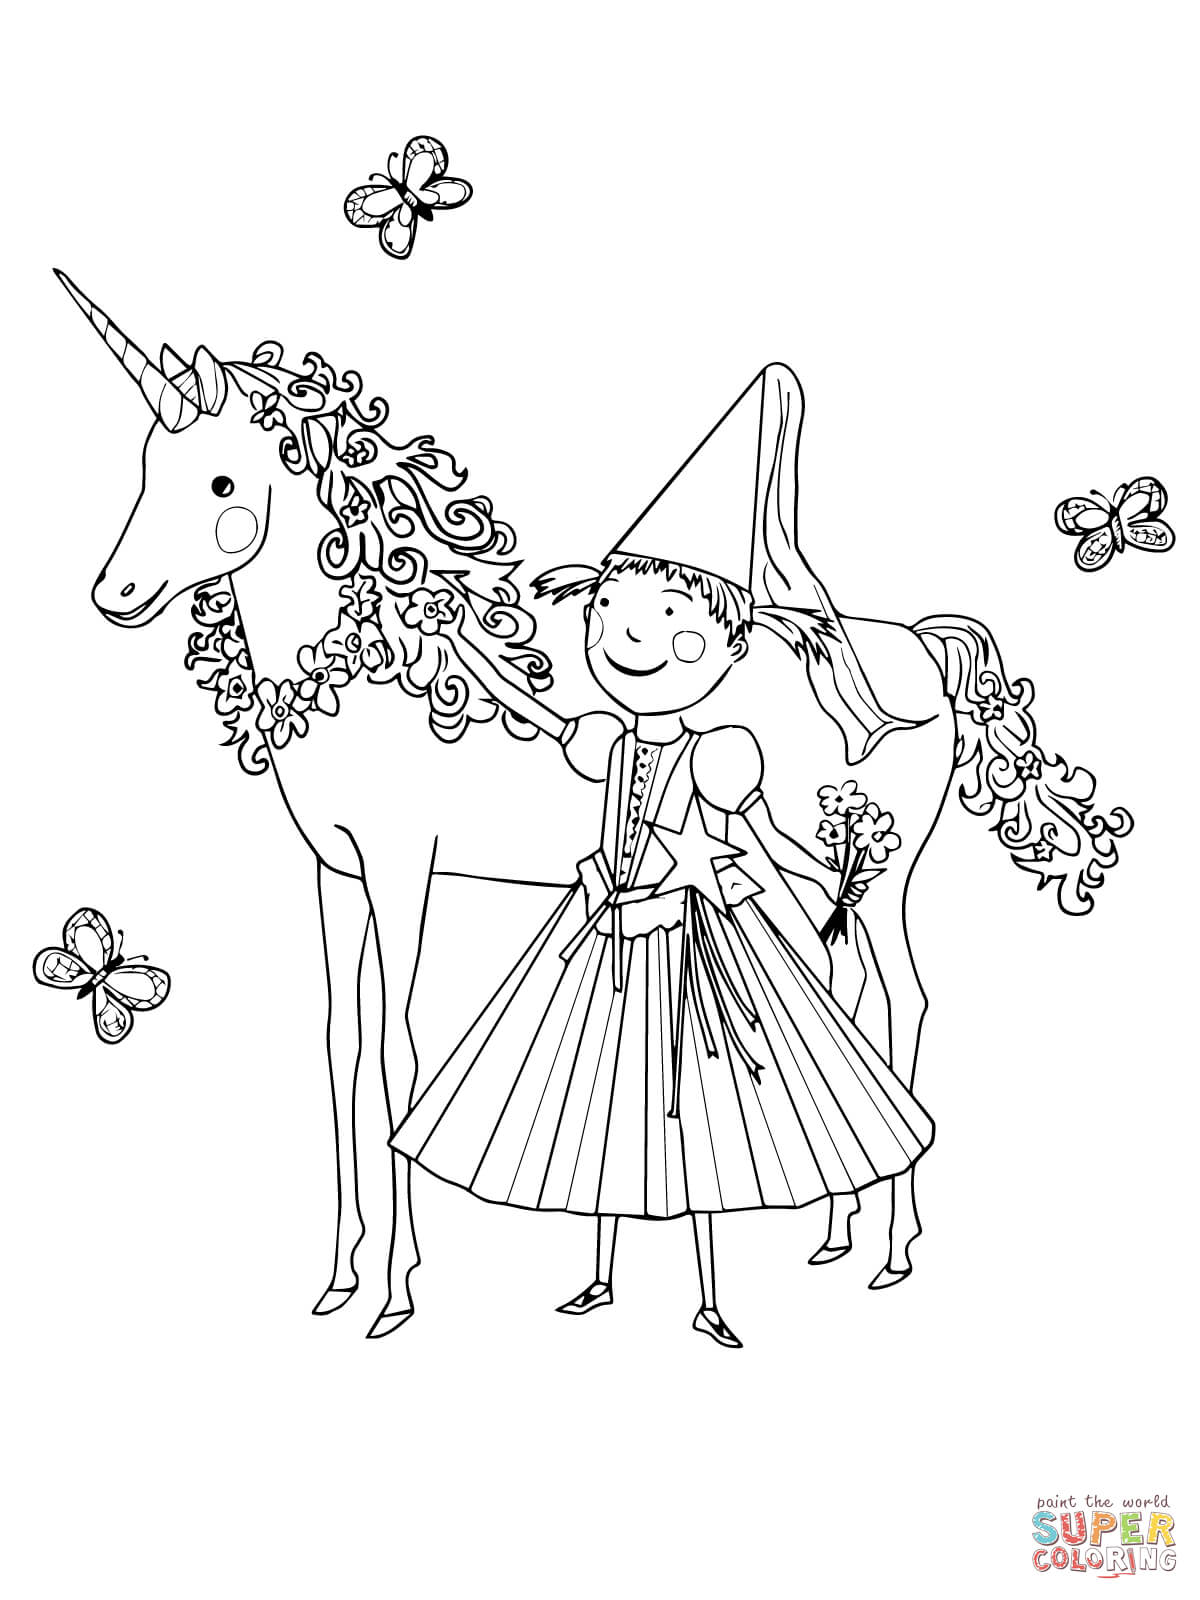 Pinkalicious Coloring Pages with her unicorn pet printable